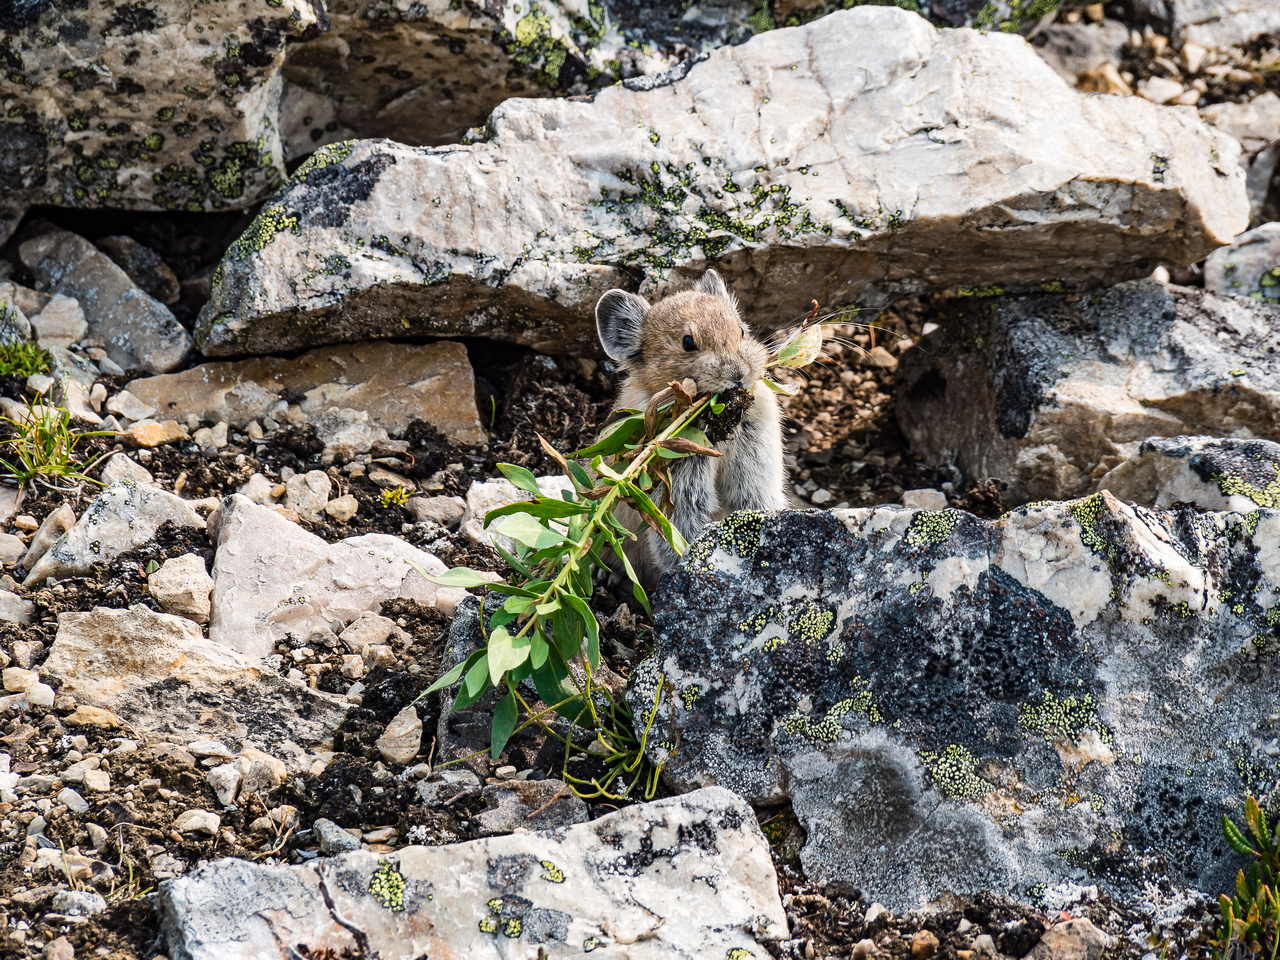 Pika's were more visible than I've ever seen before - they seemed to be in a huge rush to gather and store food for winter.